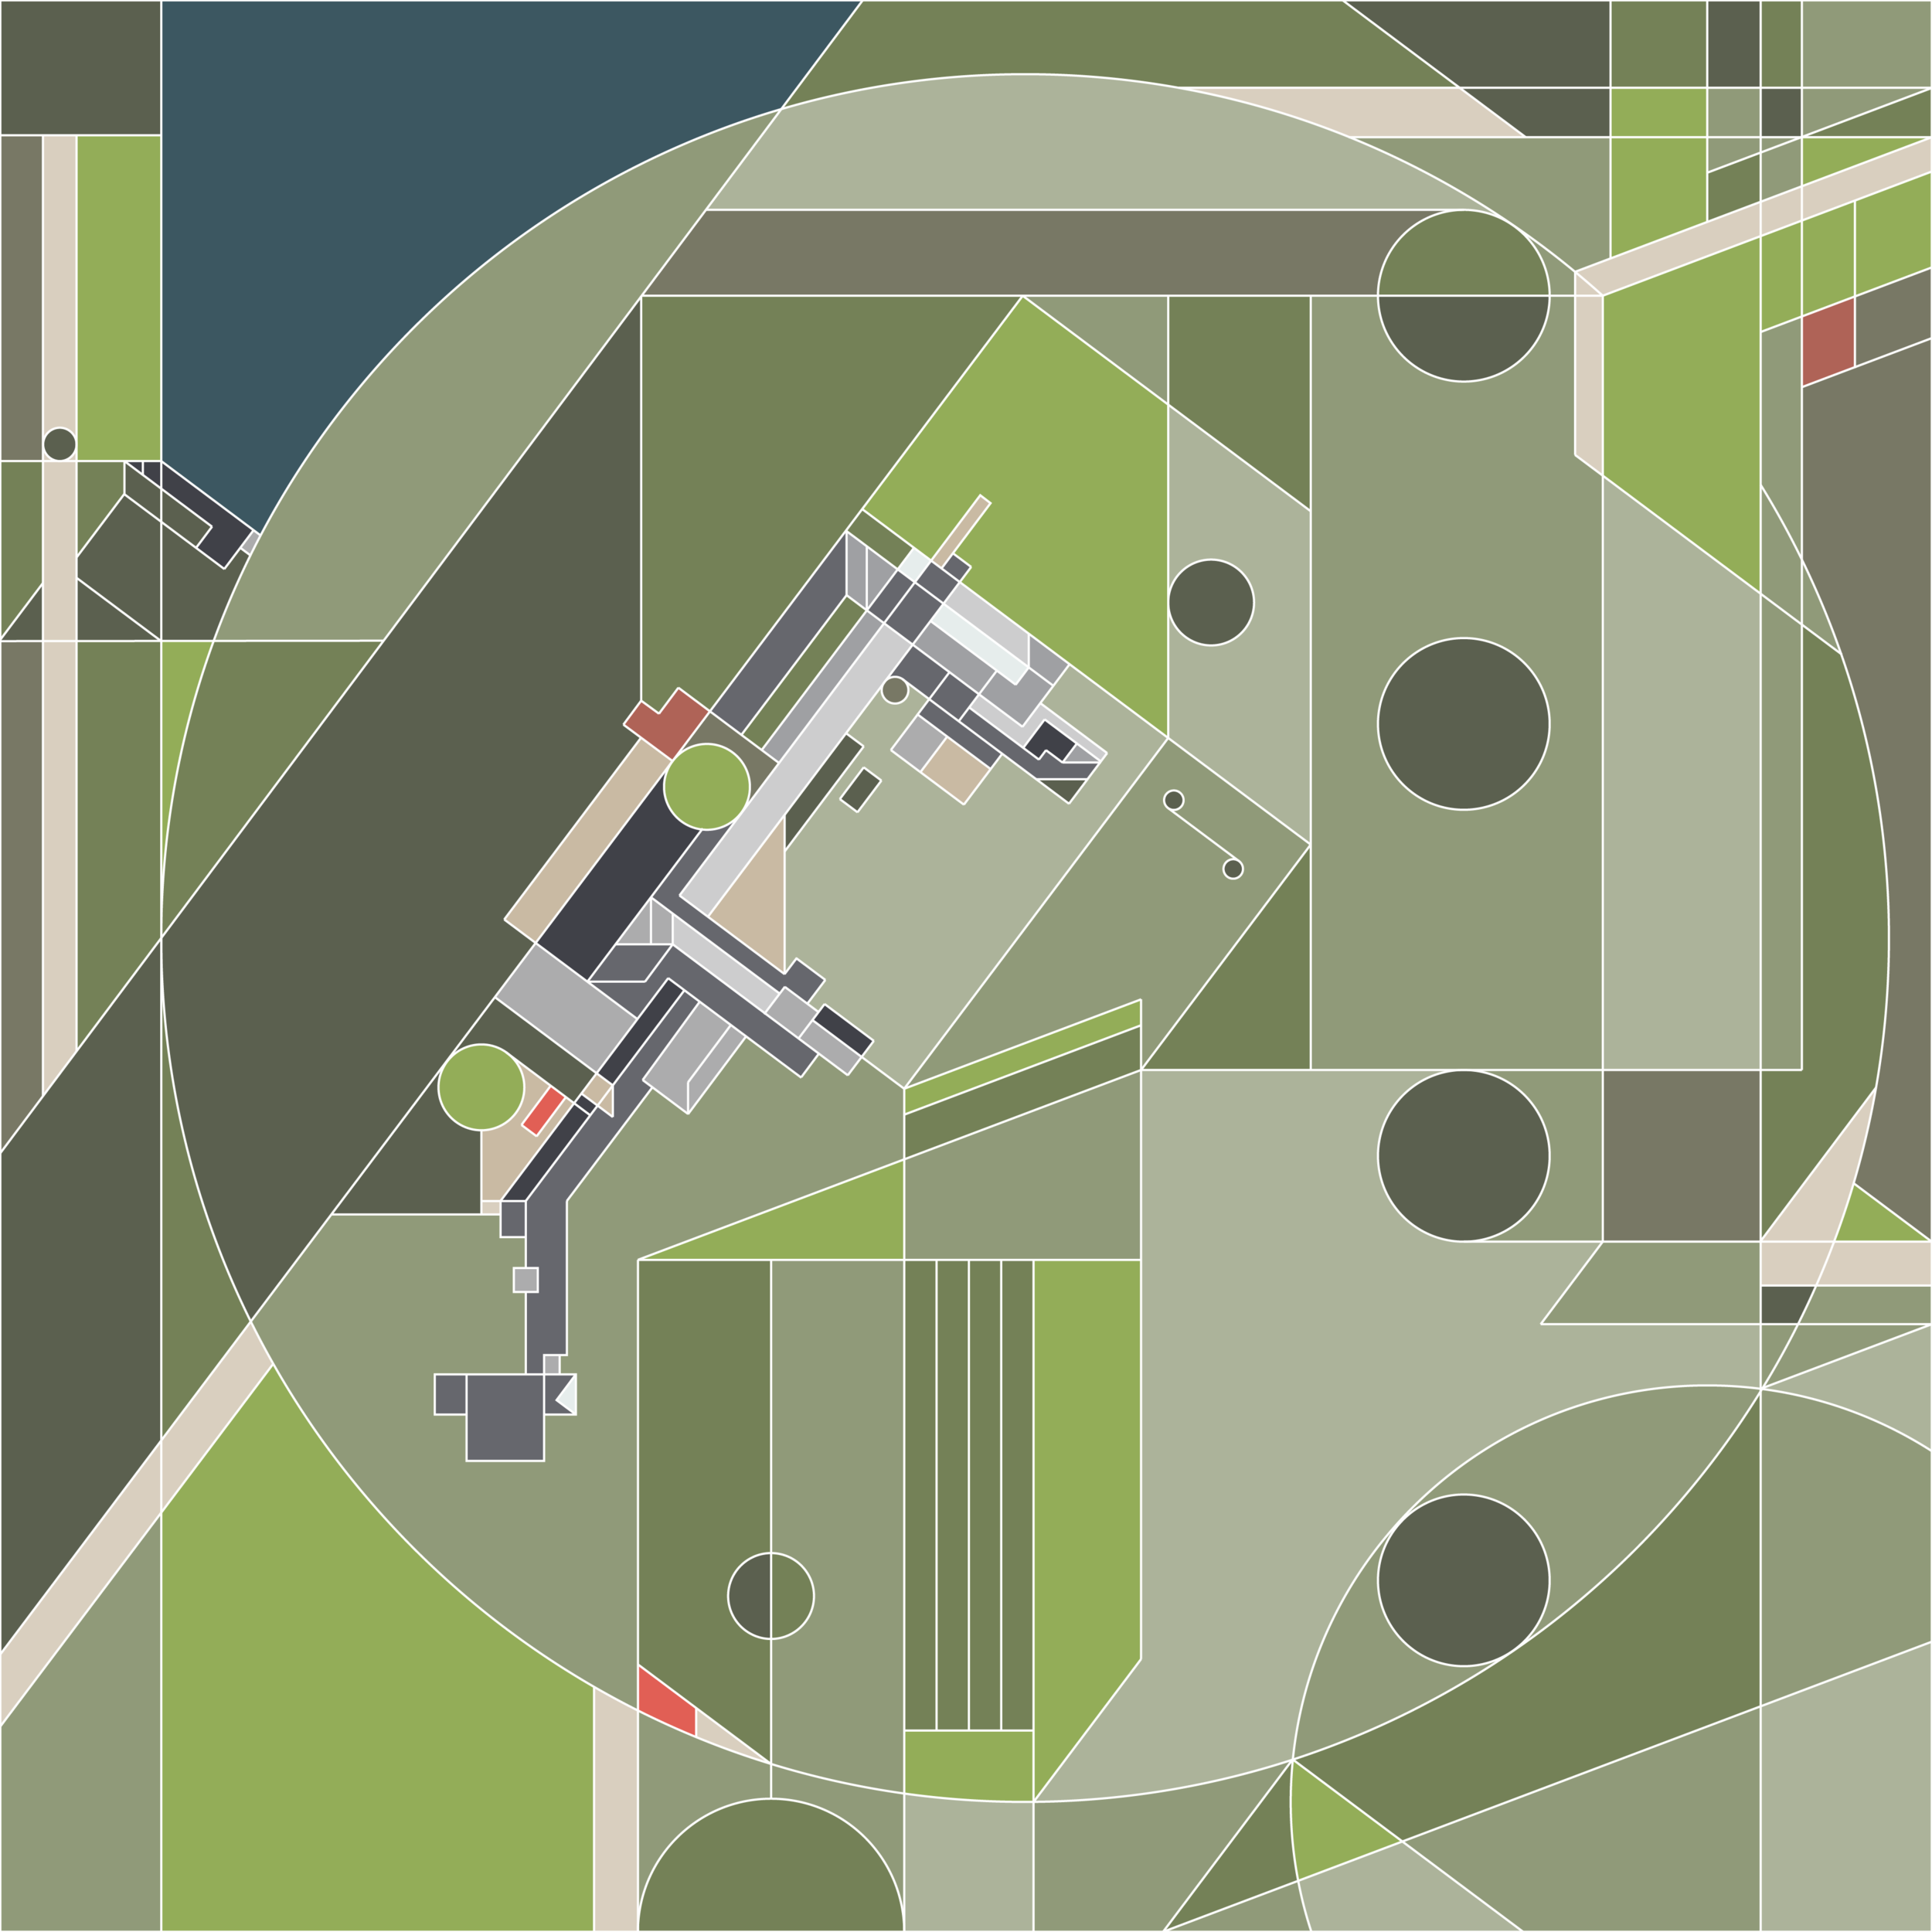 MV_Taliesin__Taliesin Aerial Abstraction_v2.png